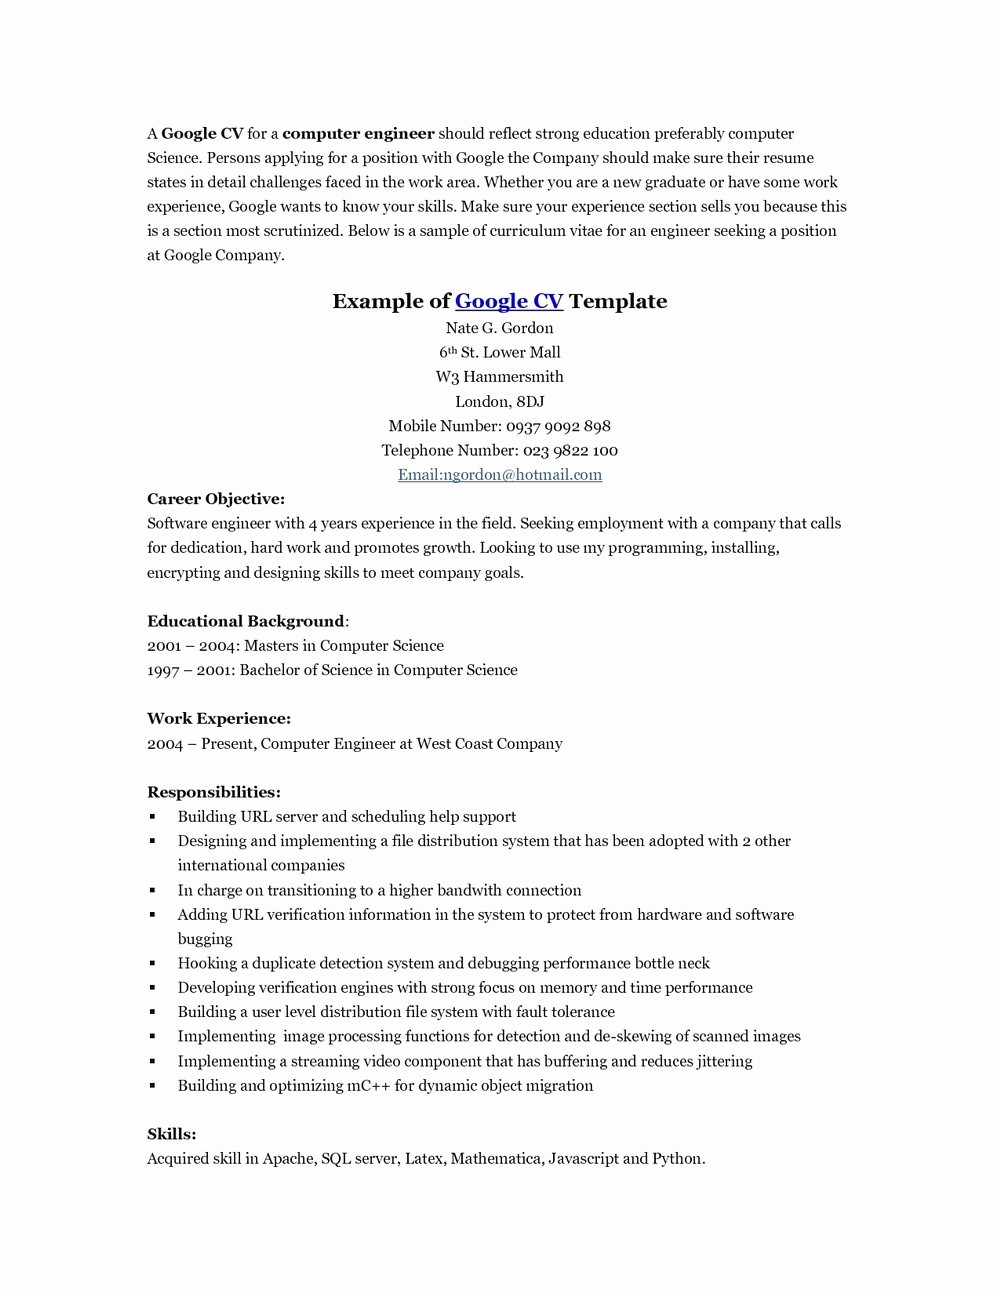 Resume Cover Letter Templates Free Fresh Resume Cover Letter Template Free Download Cover Letters